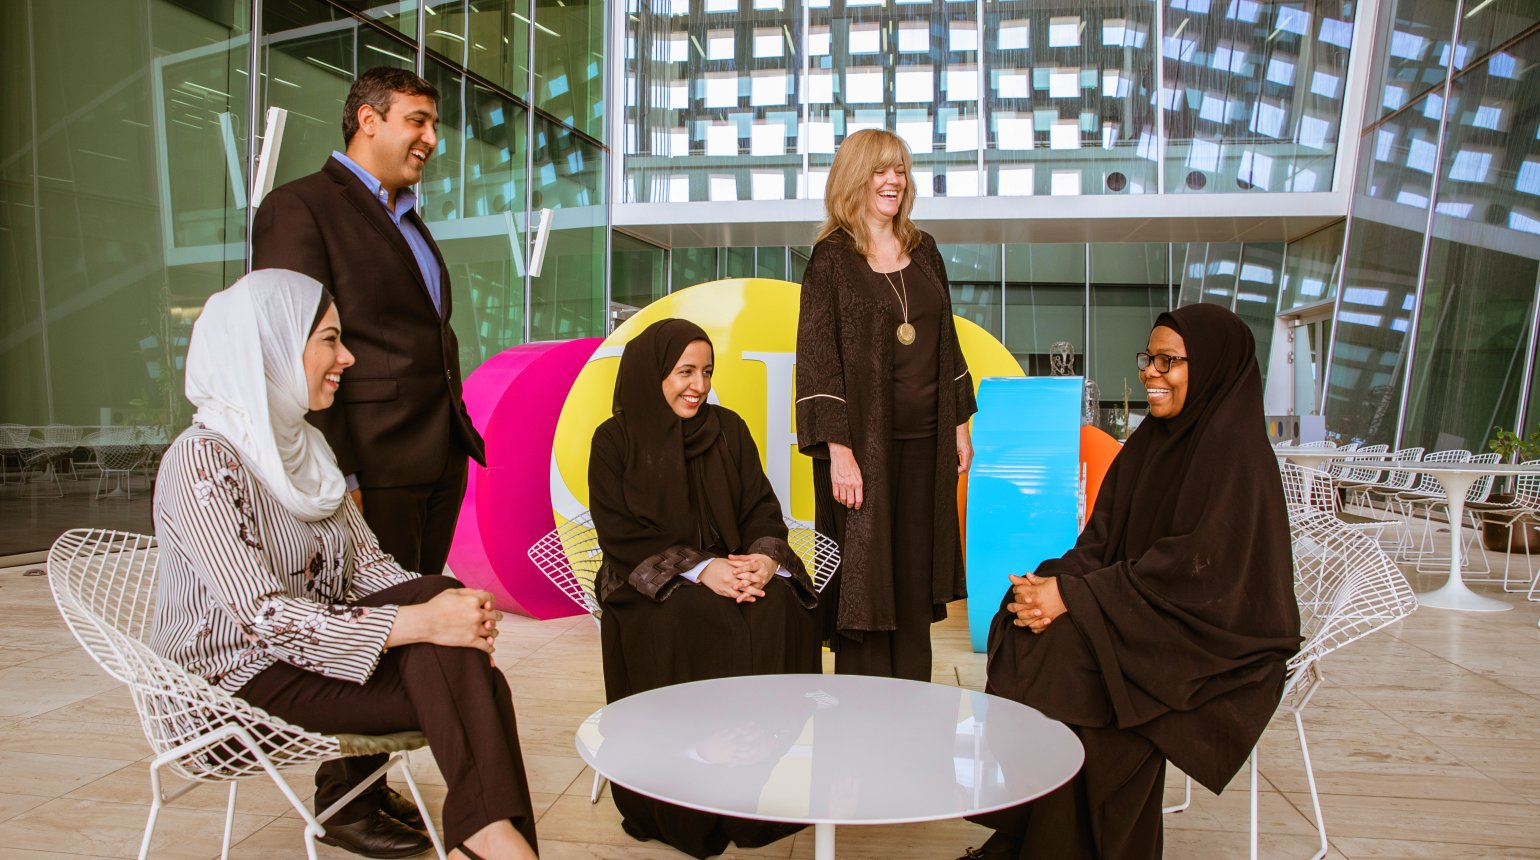 <p>From left to right: Dr. Marwa Qaraqe,  Assistant Professors of Information and Computing Technology (HBKU), Dr. Bilal Mansoor, Assistant Professor of Mechanical Engineering (TAMUQ), Dr. Dena Al Thani, Assistant Professors of Information and Computing Technology (HBKU), Sherri L. Miller, Director of Renad Academy, and Bilikis Banire (HBKU) Ph.D student</p>